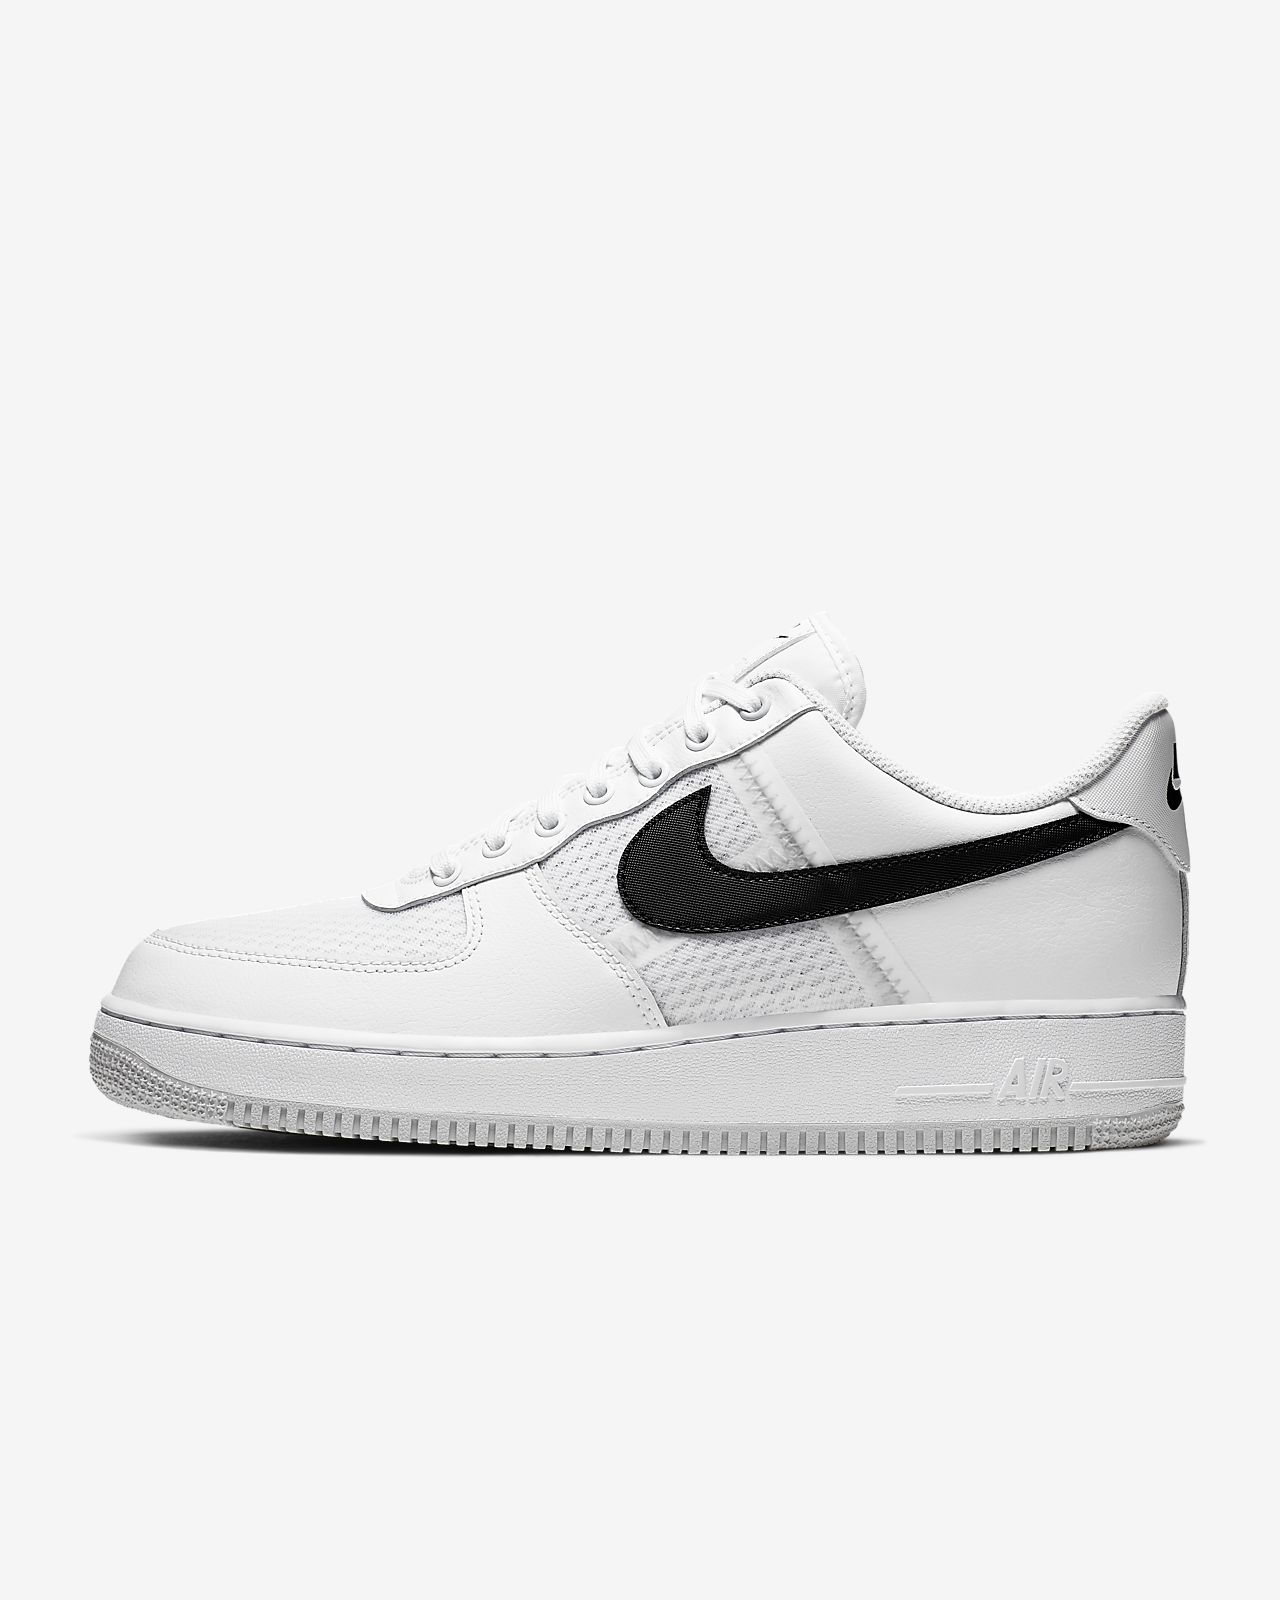 Nike Air Force 1 \u002707 LV8 Men\u0027s Shoe